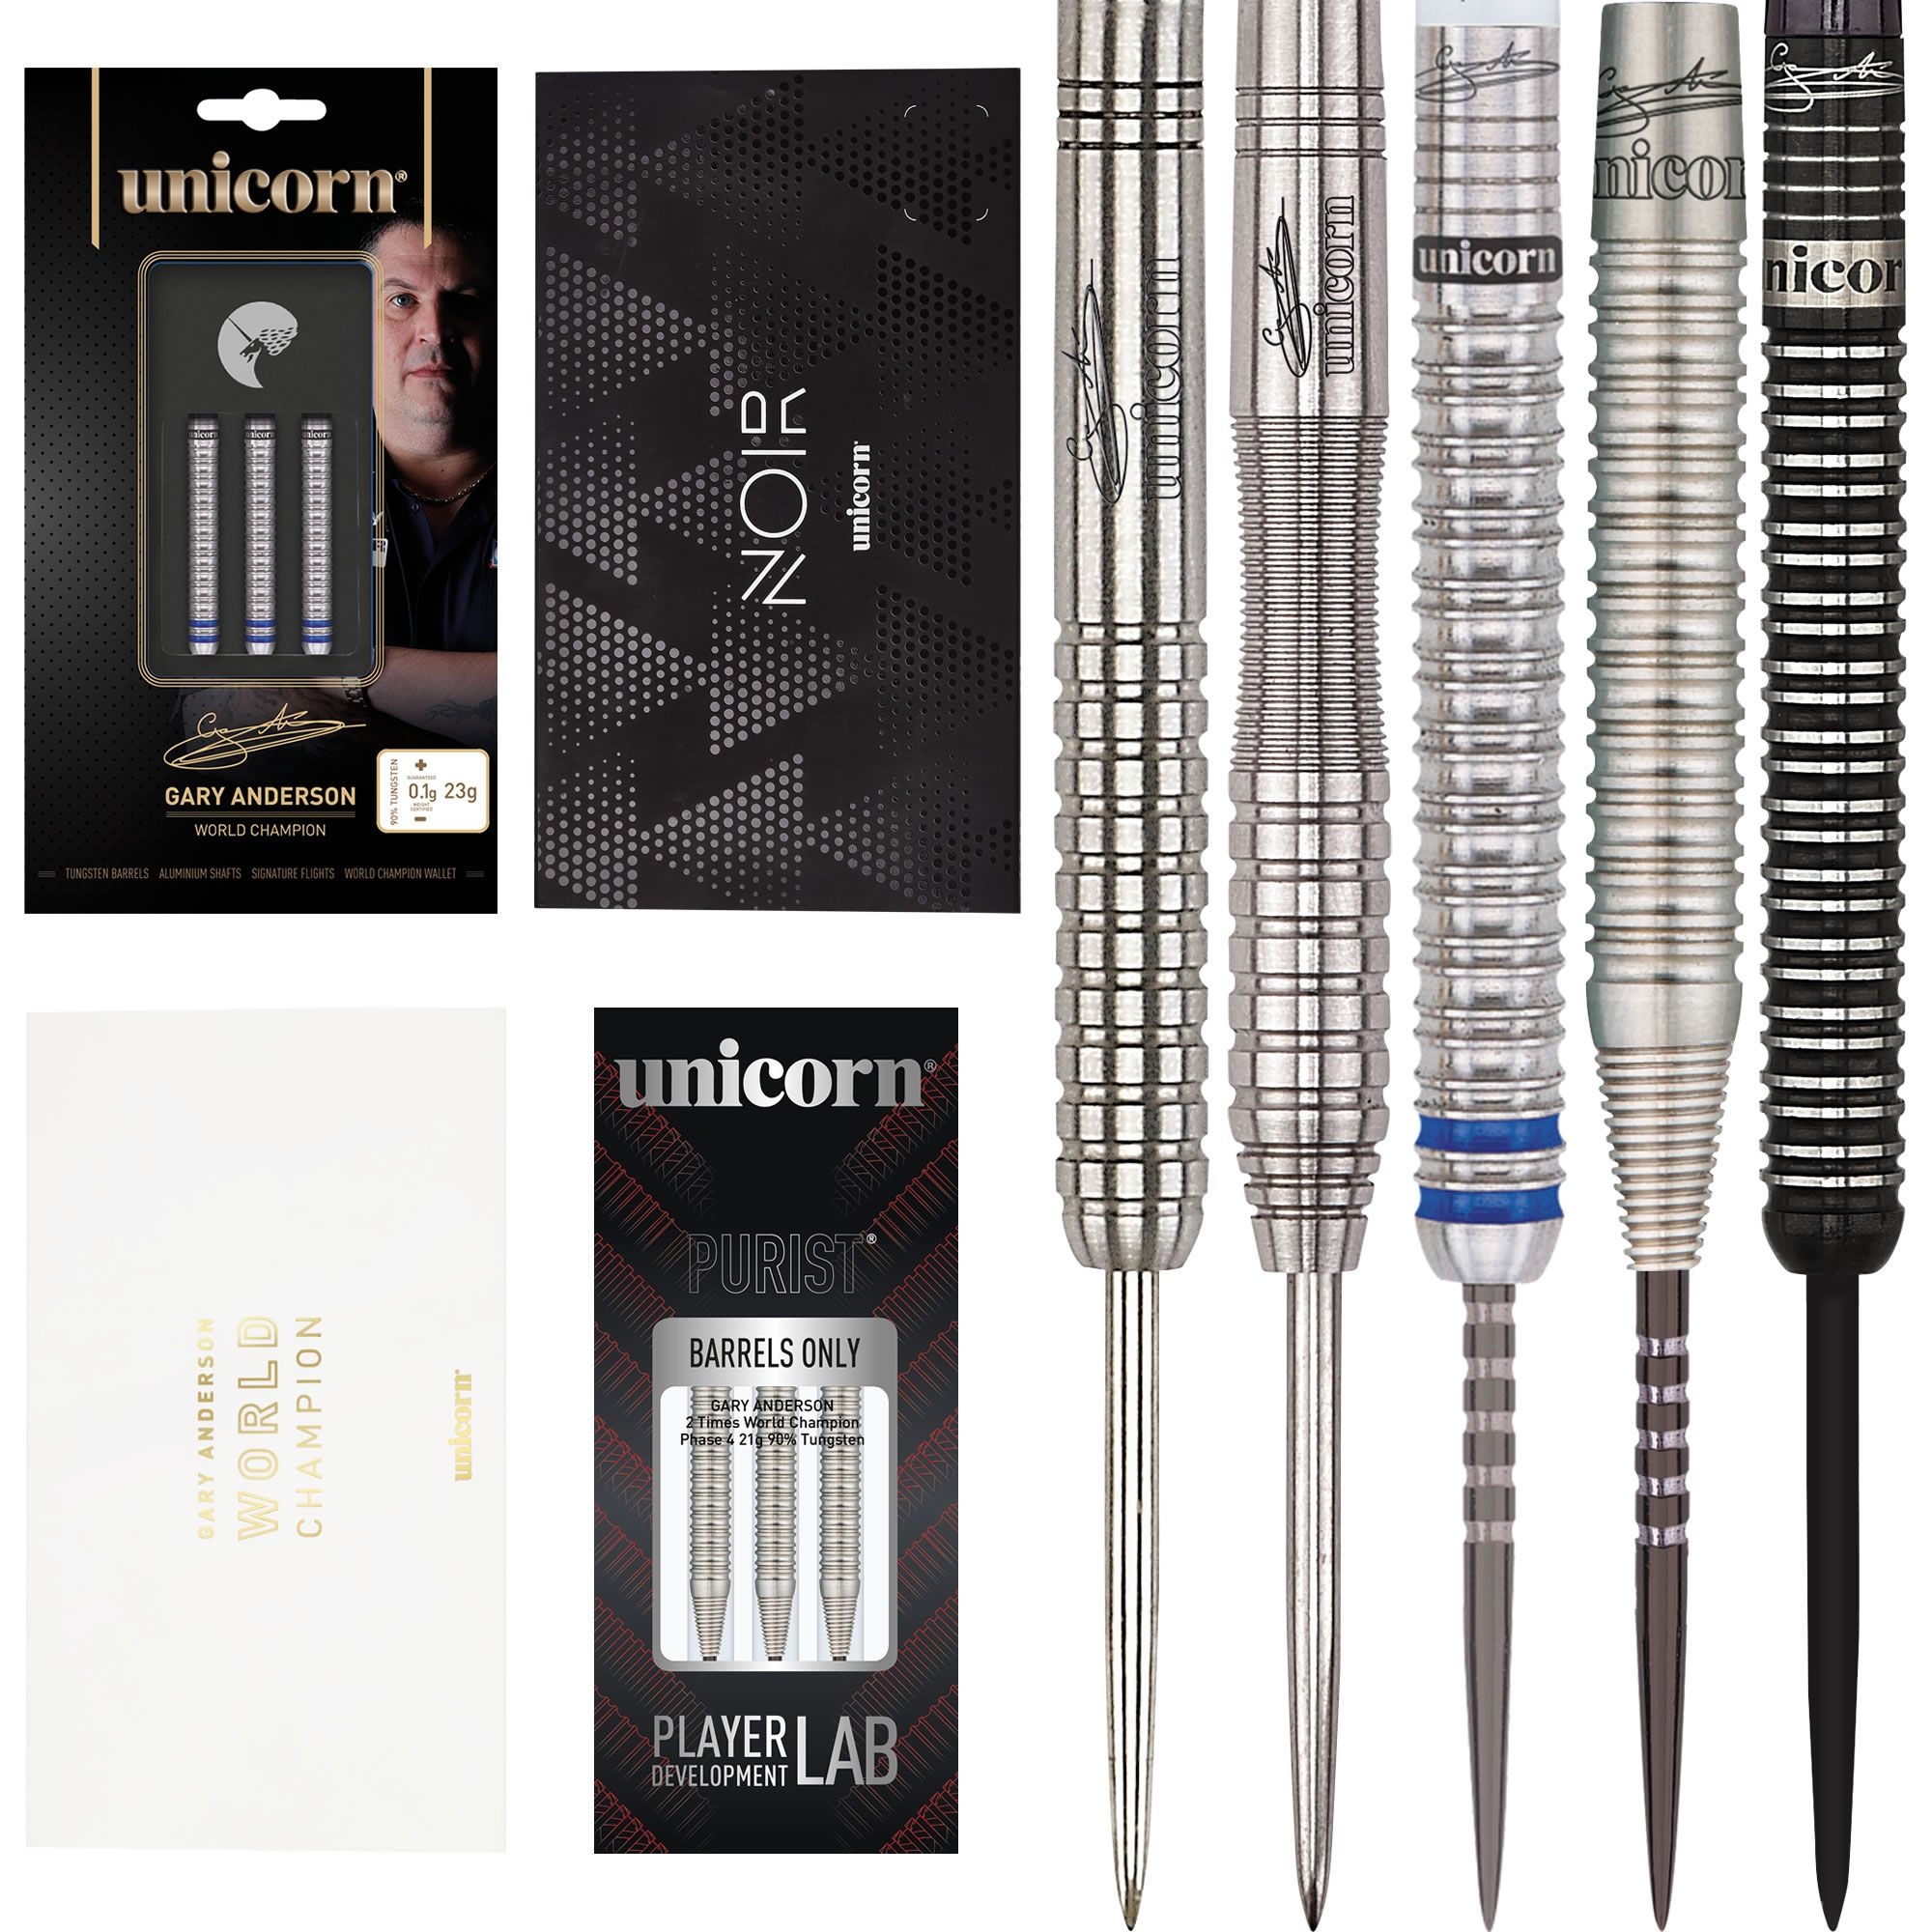 Endorsed by the 2 x pdc world champion gary anderson